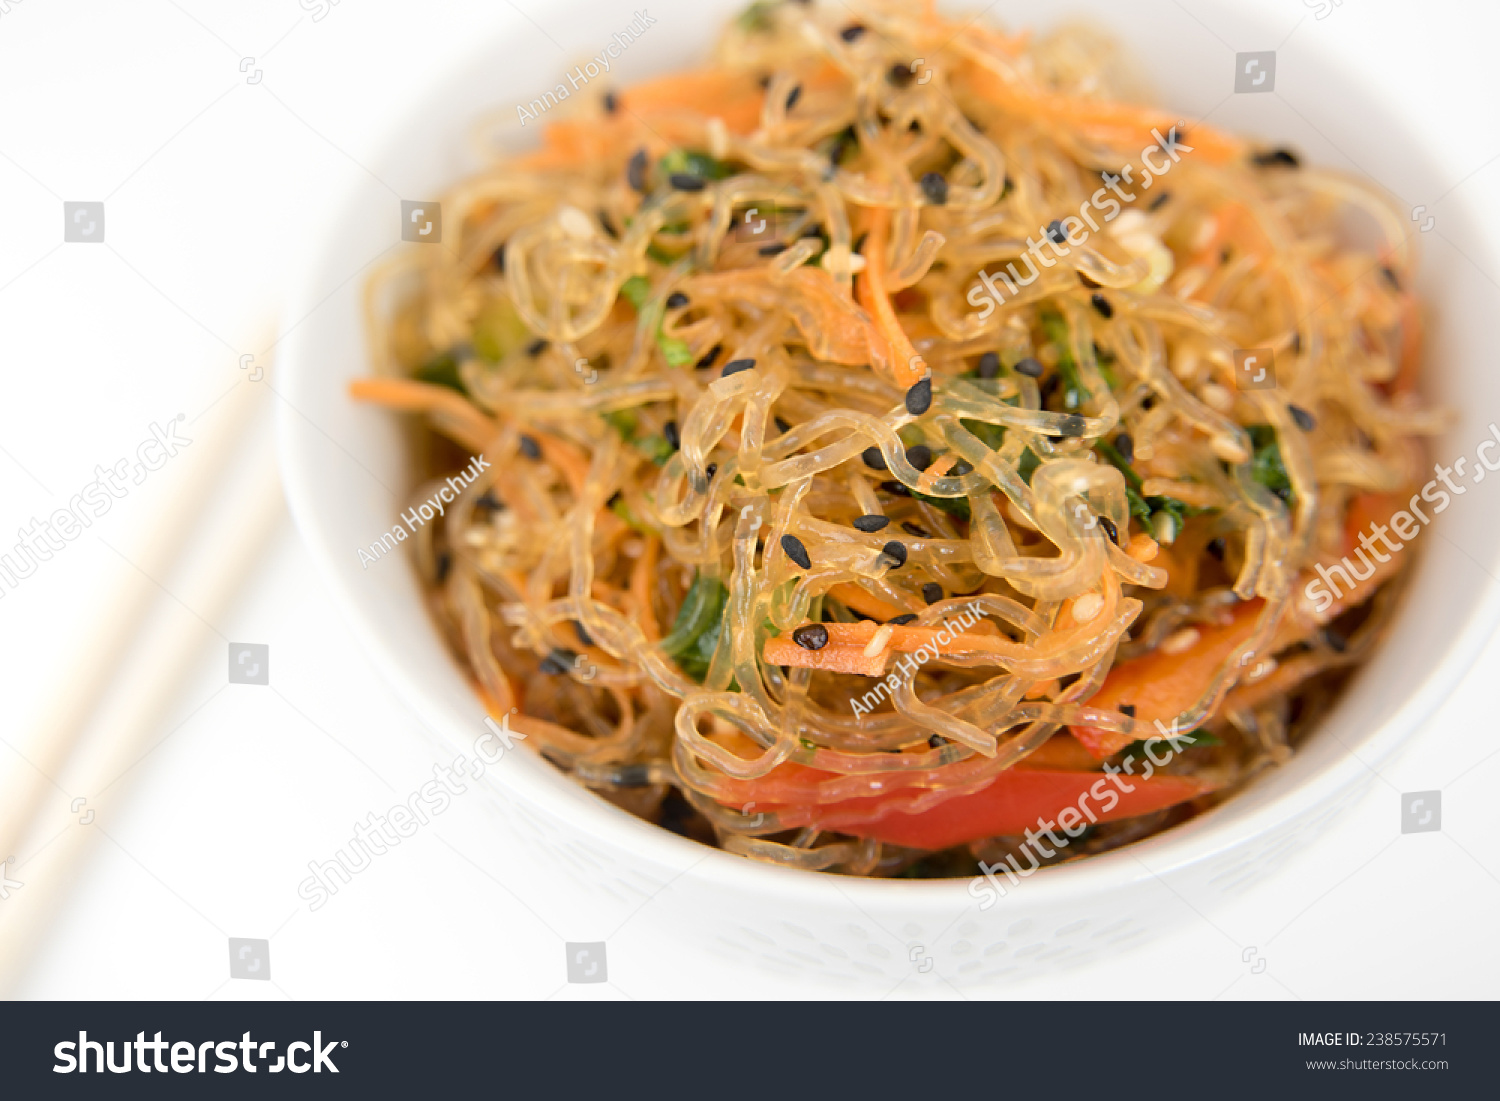 ... Cuisine Inspired Kelp Noodle Salad with Vegetable and Sesame Seeds